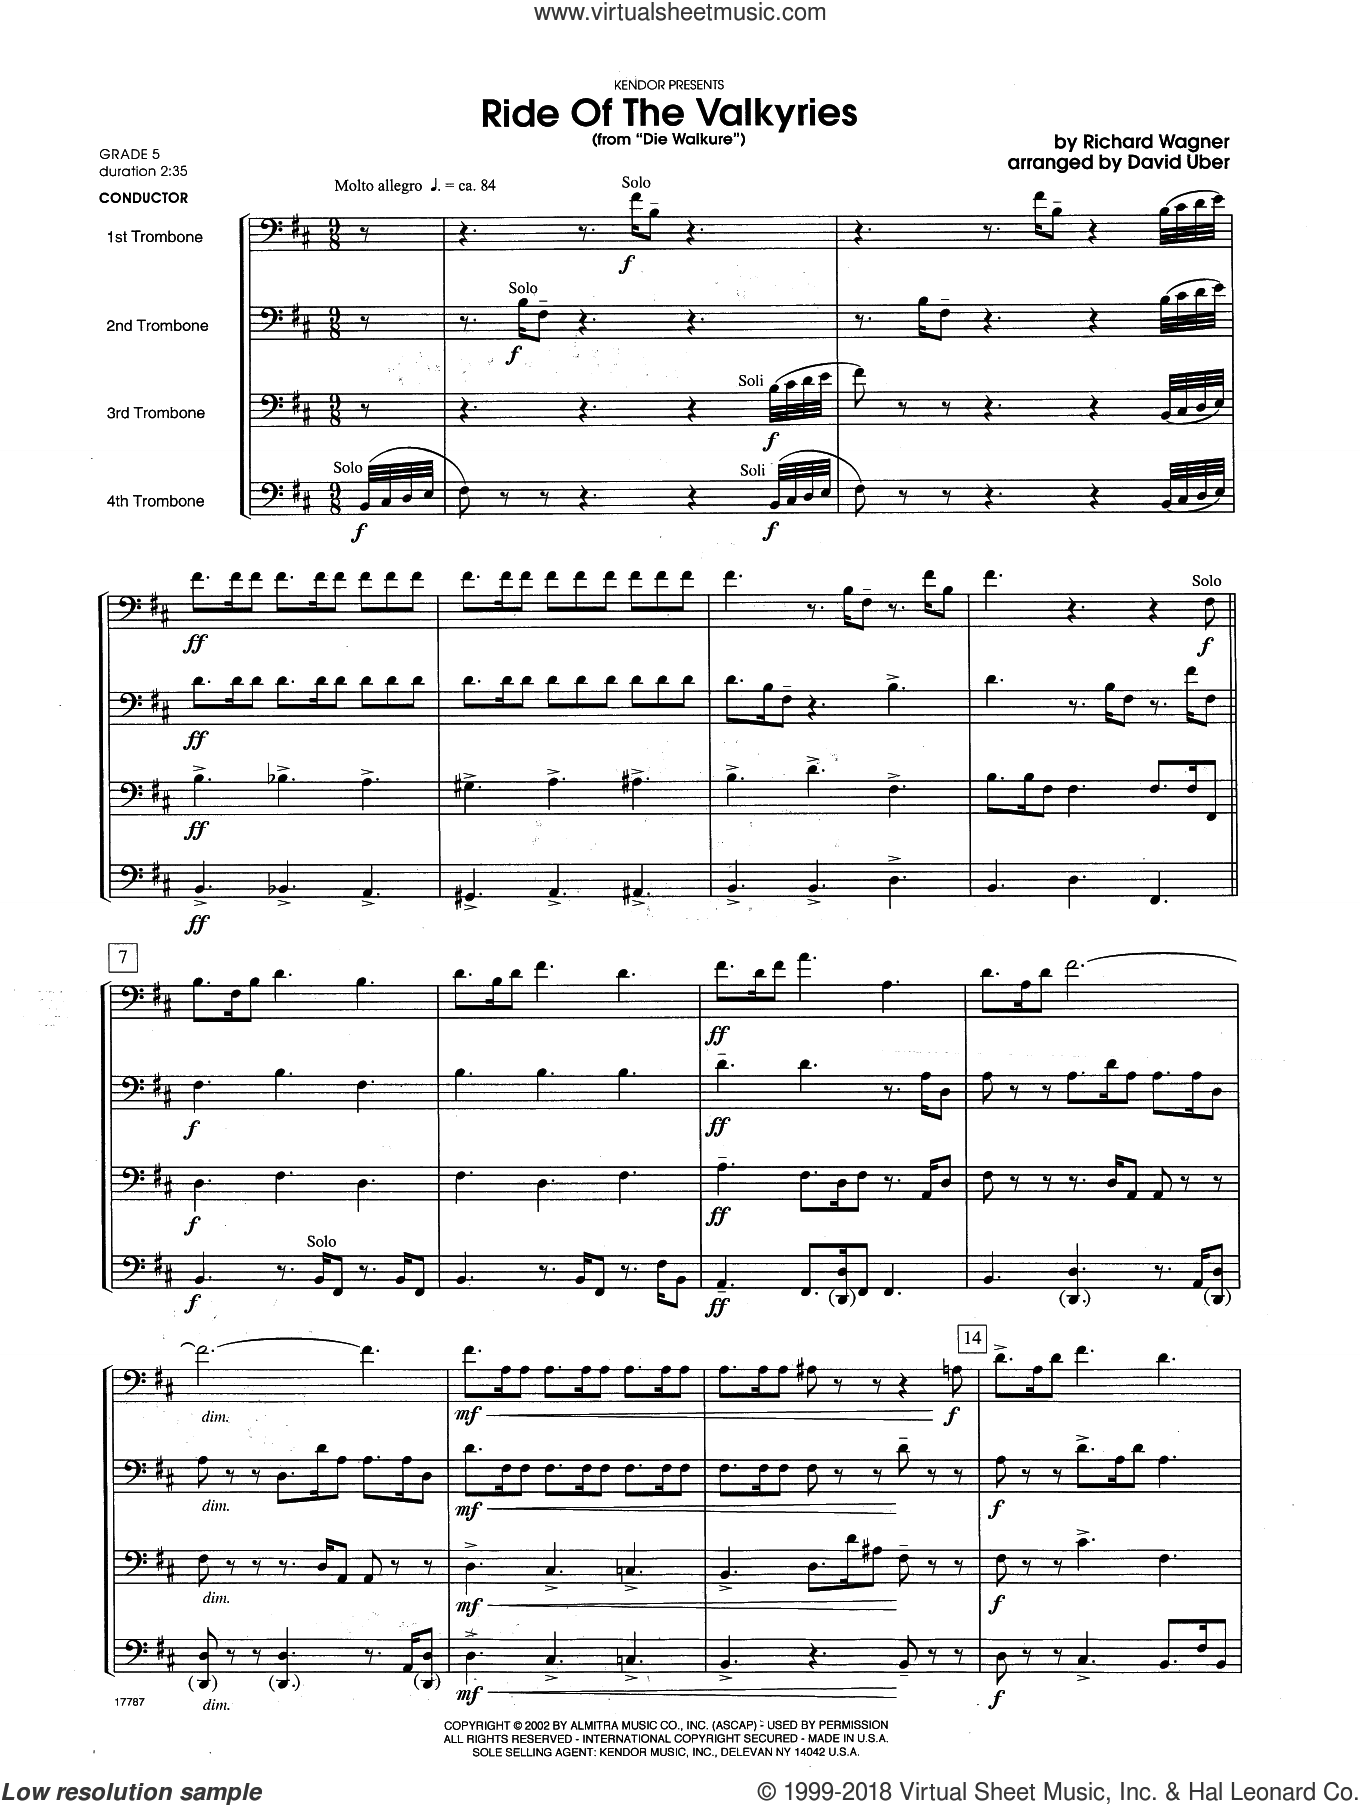 Ride Of The Valkyries From Die Walkure (COMPLETE) sheet music for trombone quartet by David Uber and Richard Wagner, intermediate